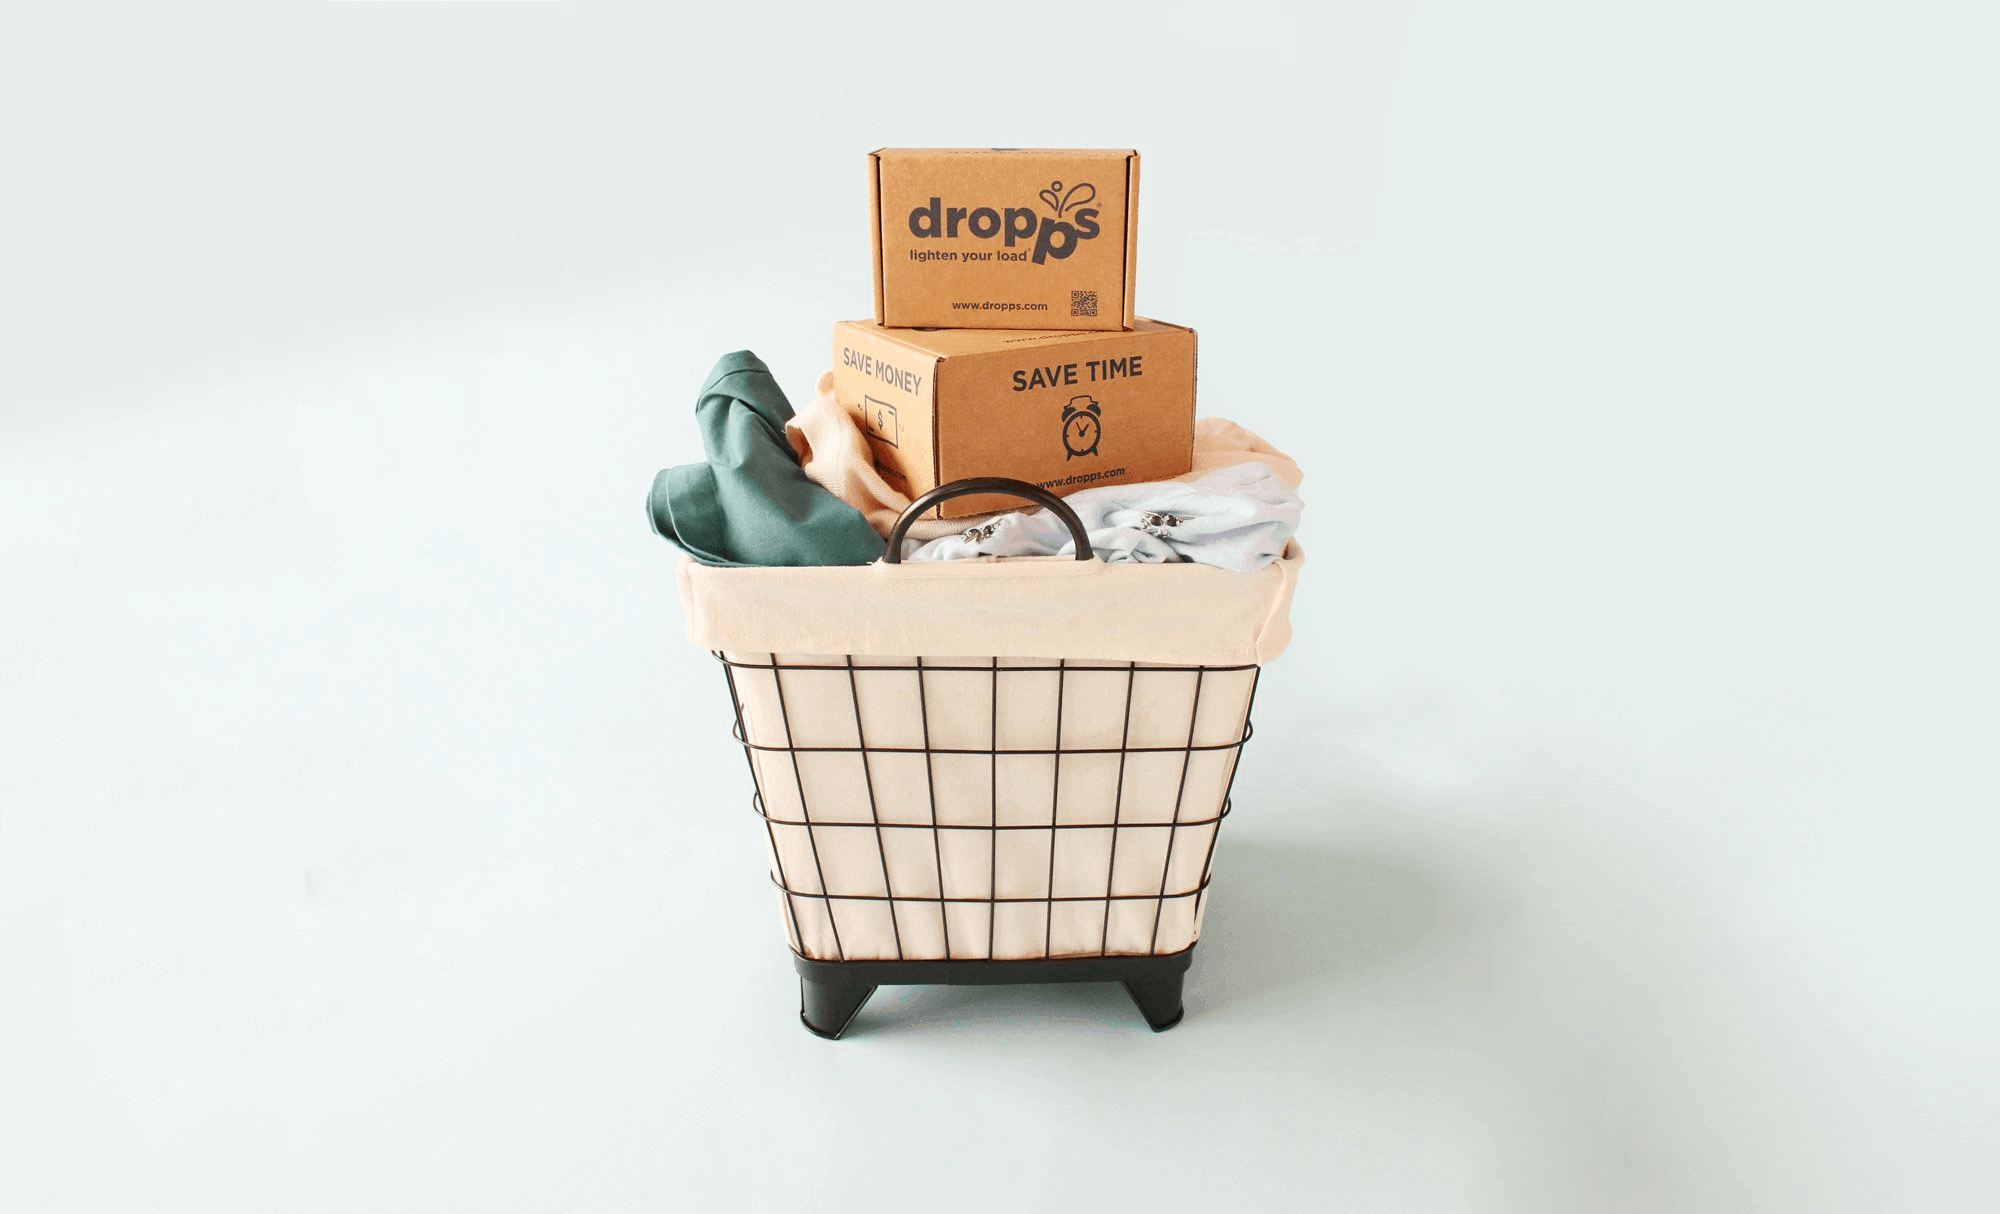 Dropps Coupon: Get 25% Off!